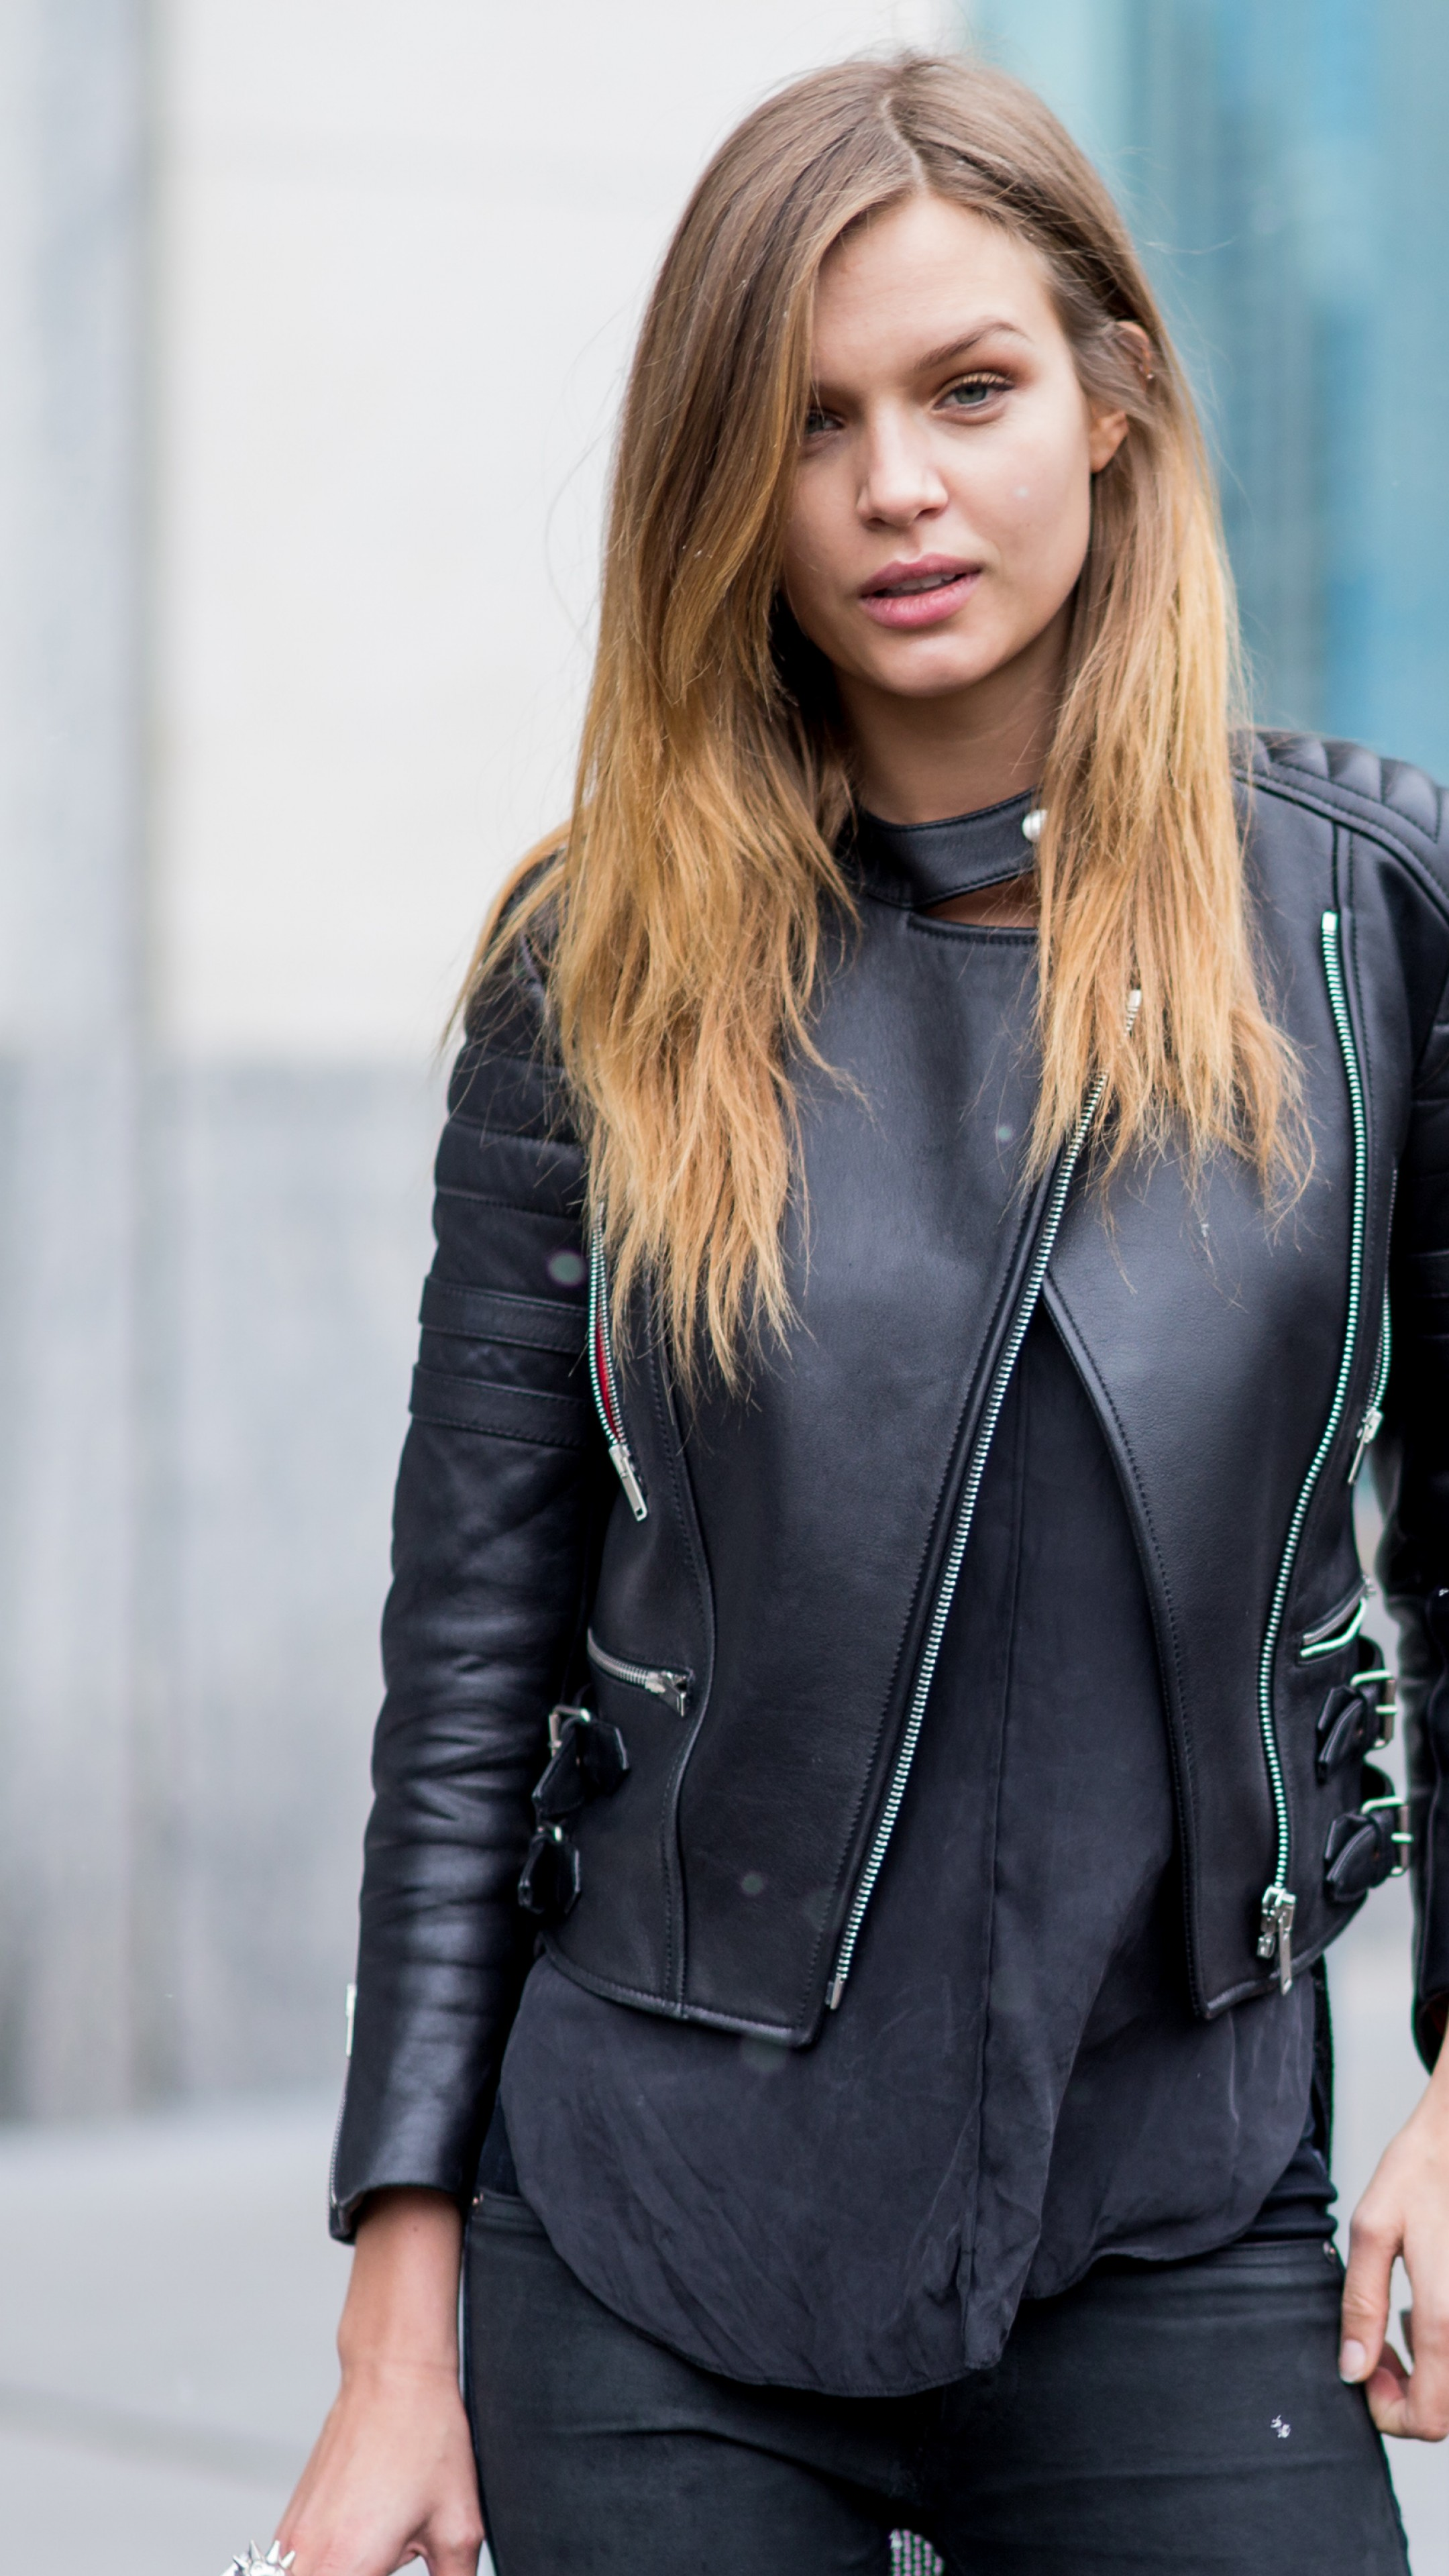 Famous Wallpapers For Girls Wallpaper Josephine Skriver Top Fashion Models 2015